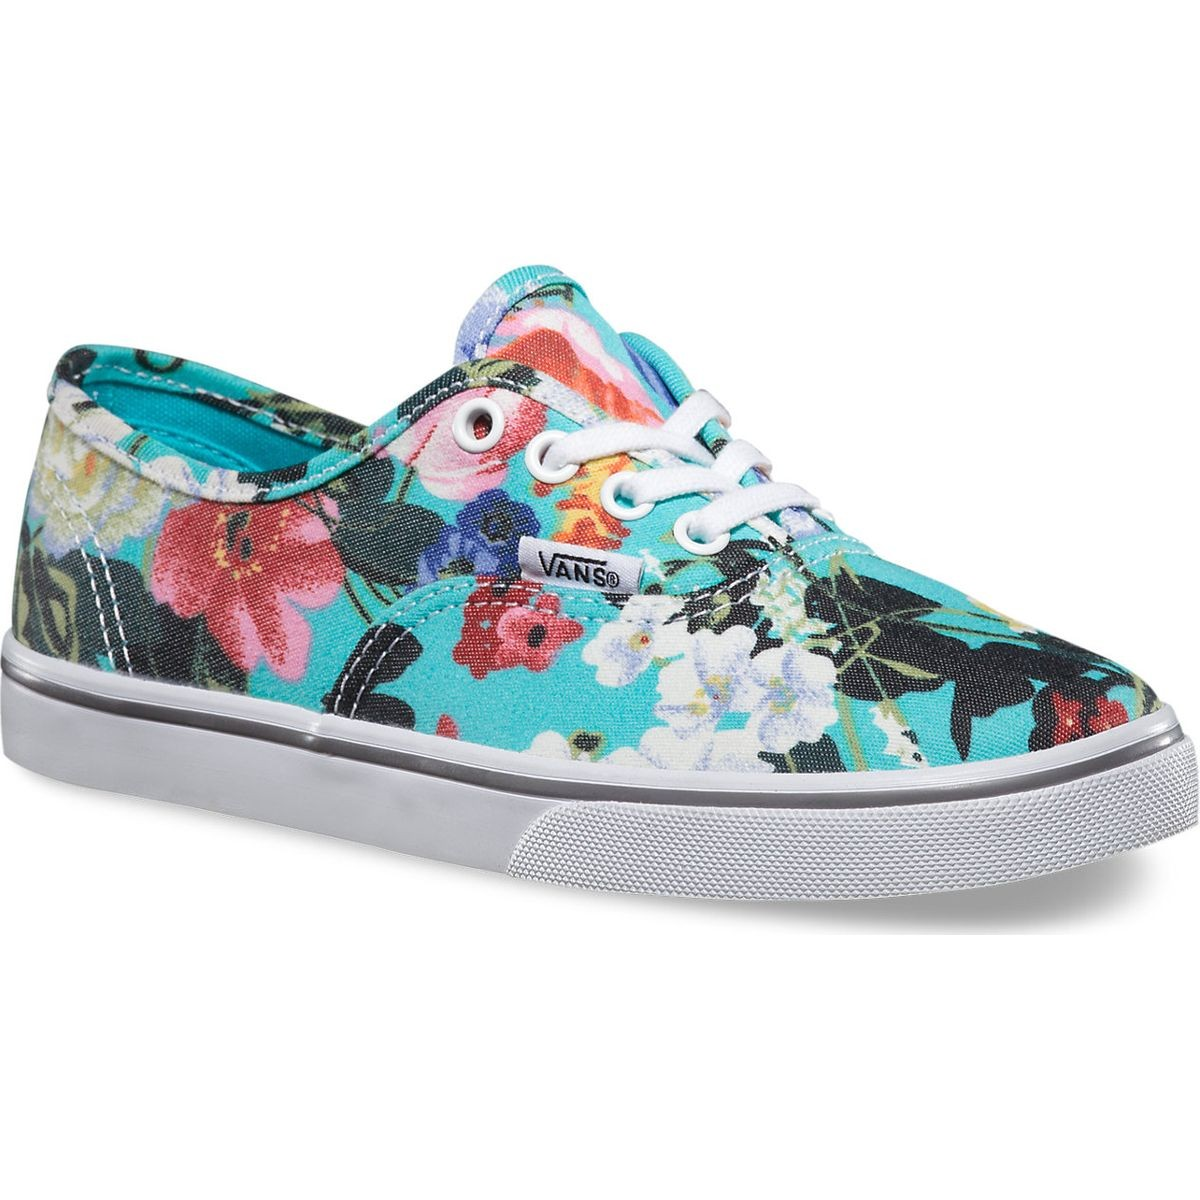 a875e06e8bd0 Pictures of Vans Shoes For Girls Floral -  rock-cafe